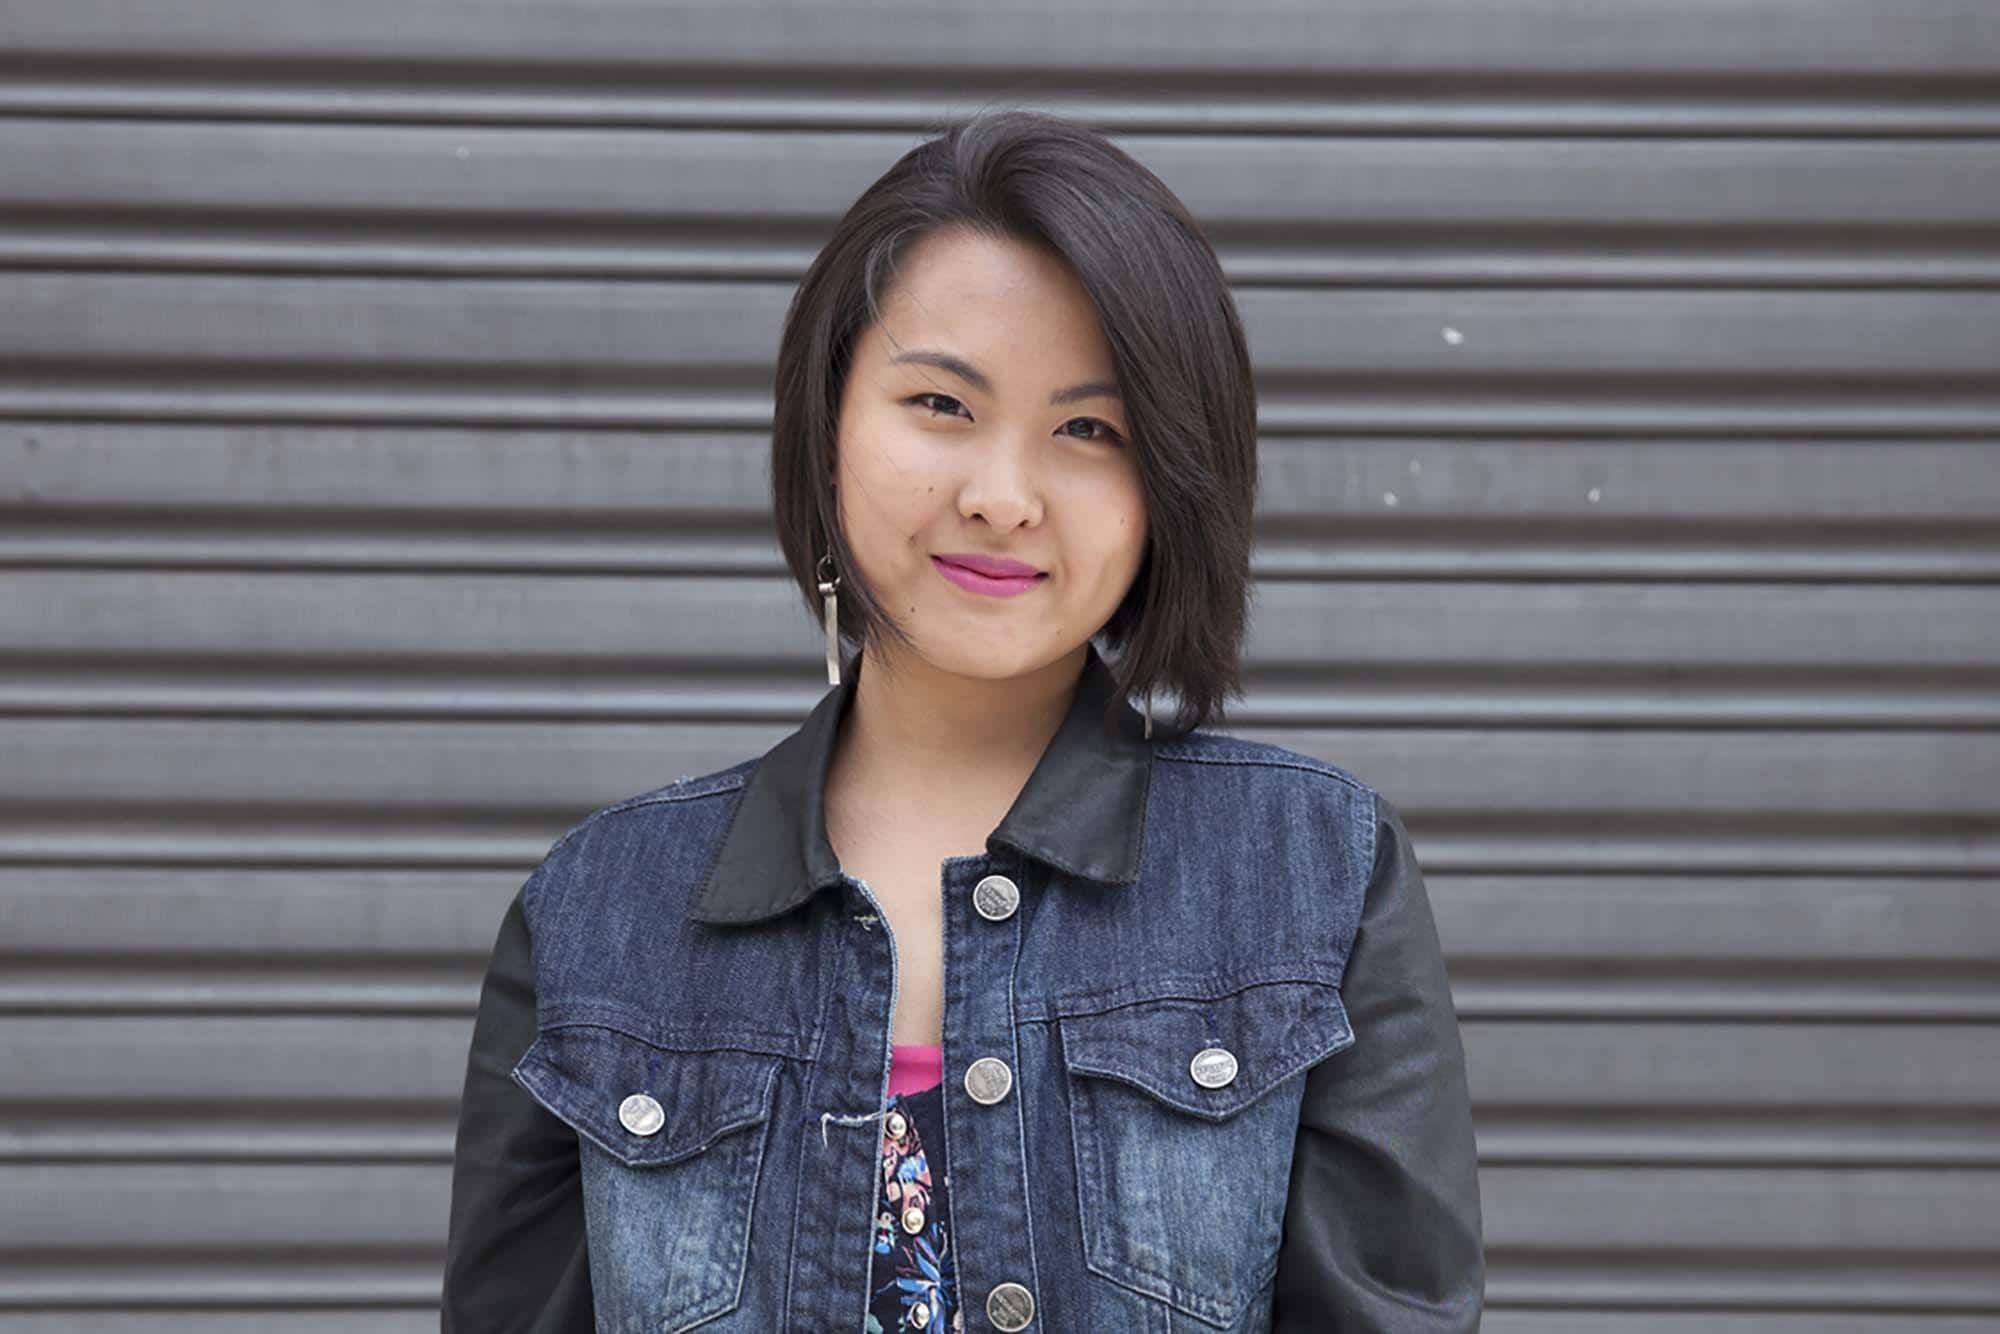 Short hair for round face: Asian woman with black hair in a bob wearing a denim jacket outdoors